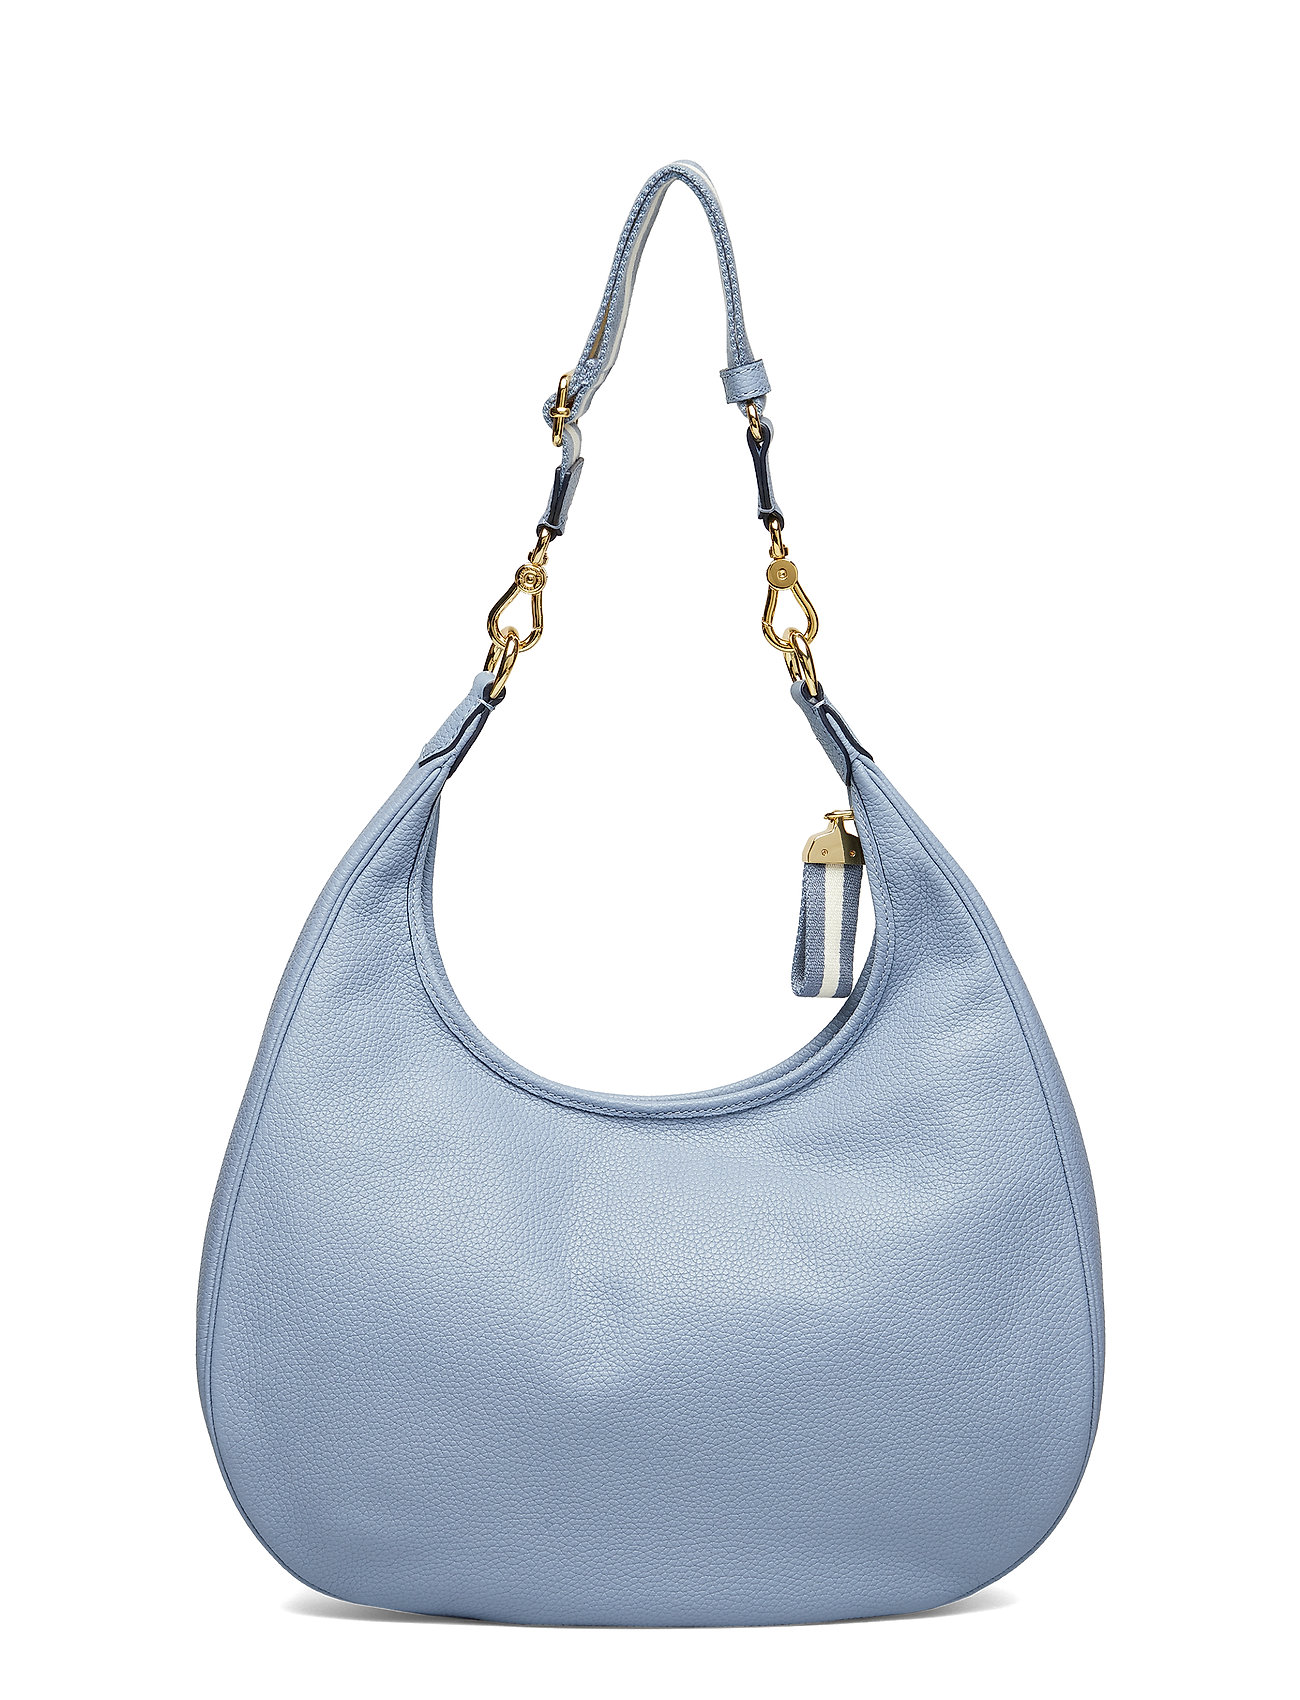 MistLauren Pebbled Bagblue Hobo Ralph Leather QrhxstdC